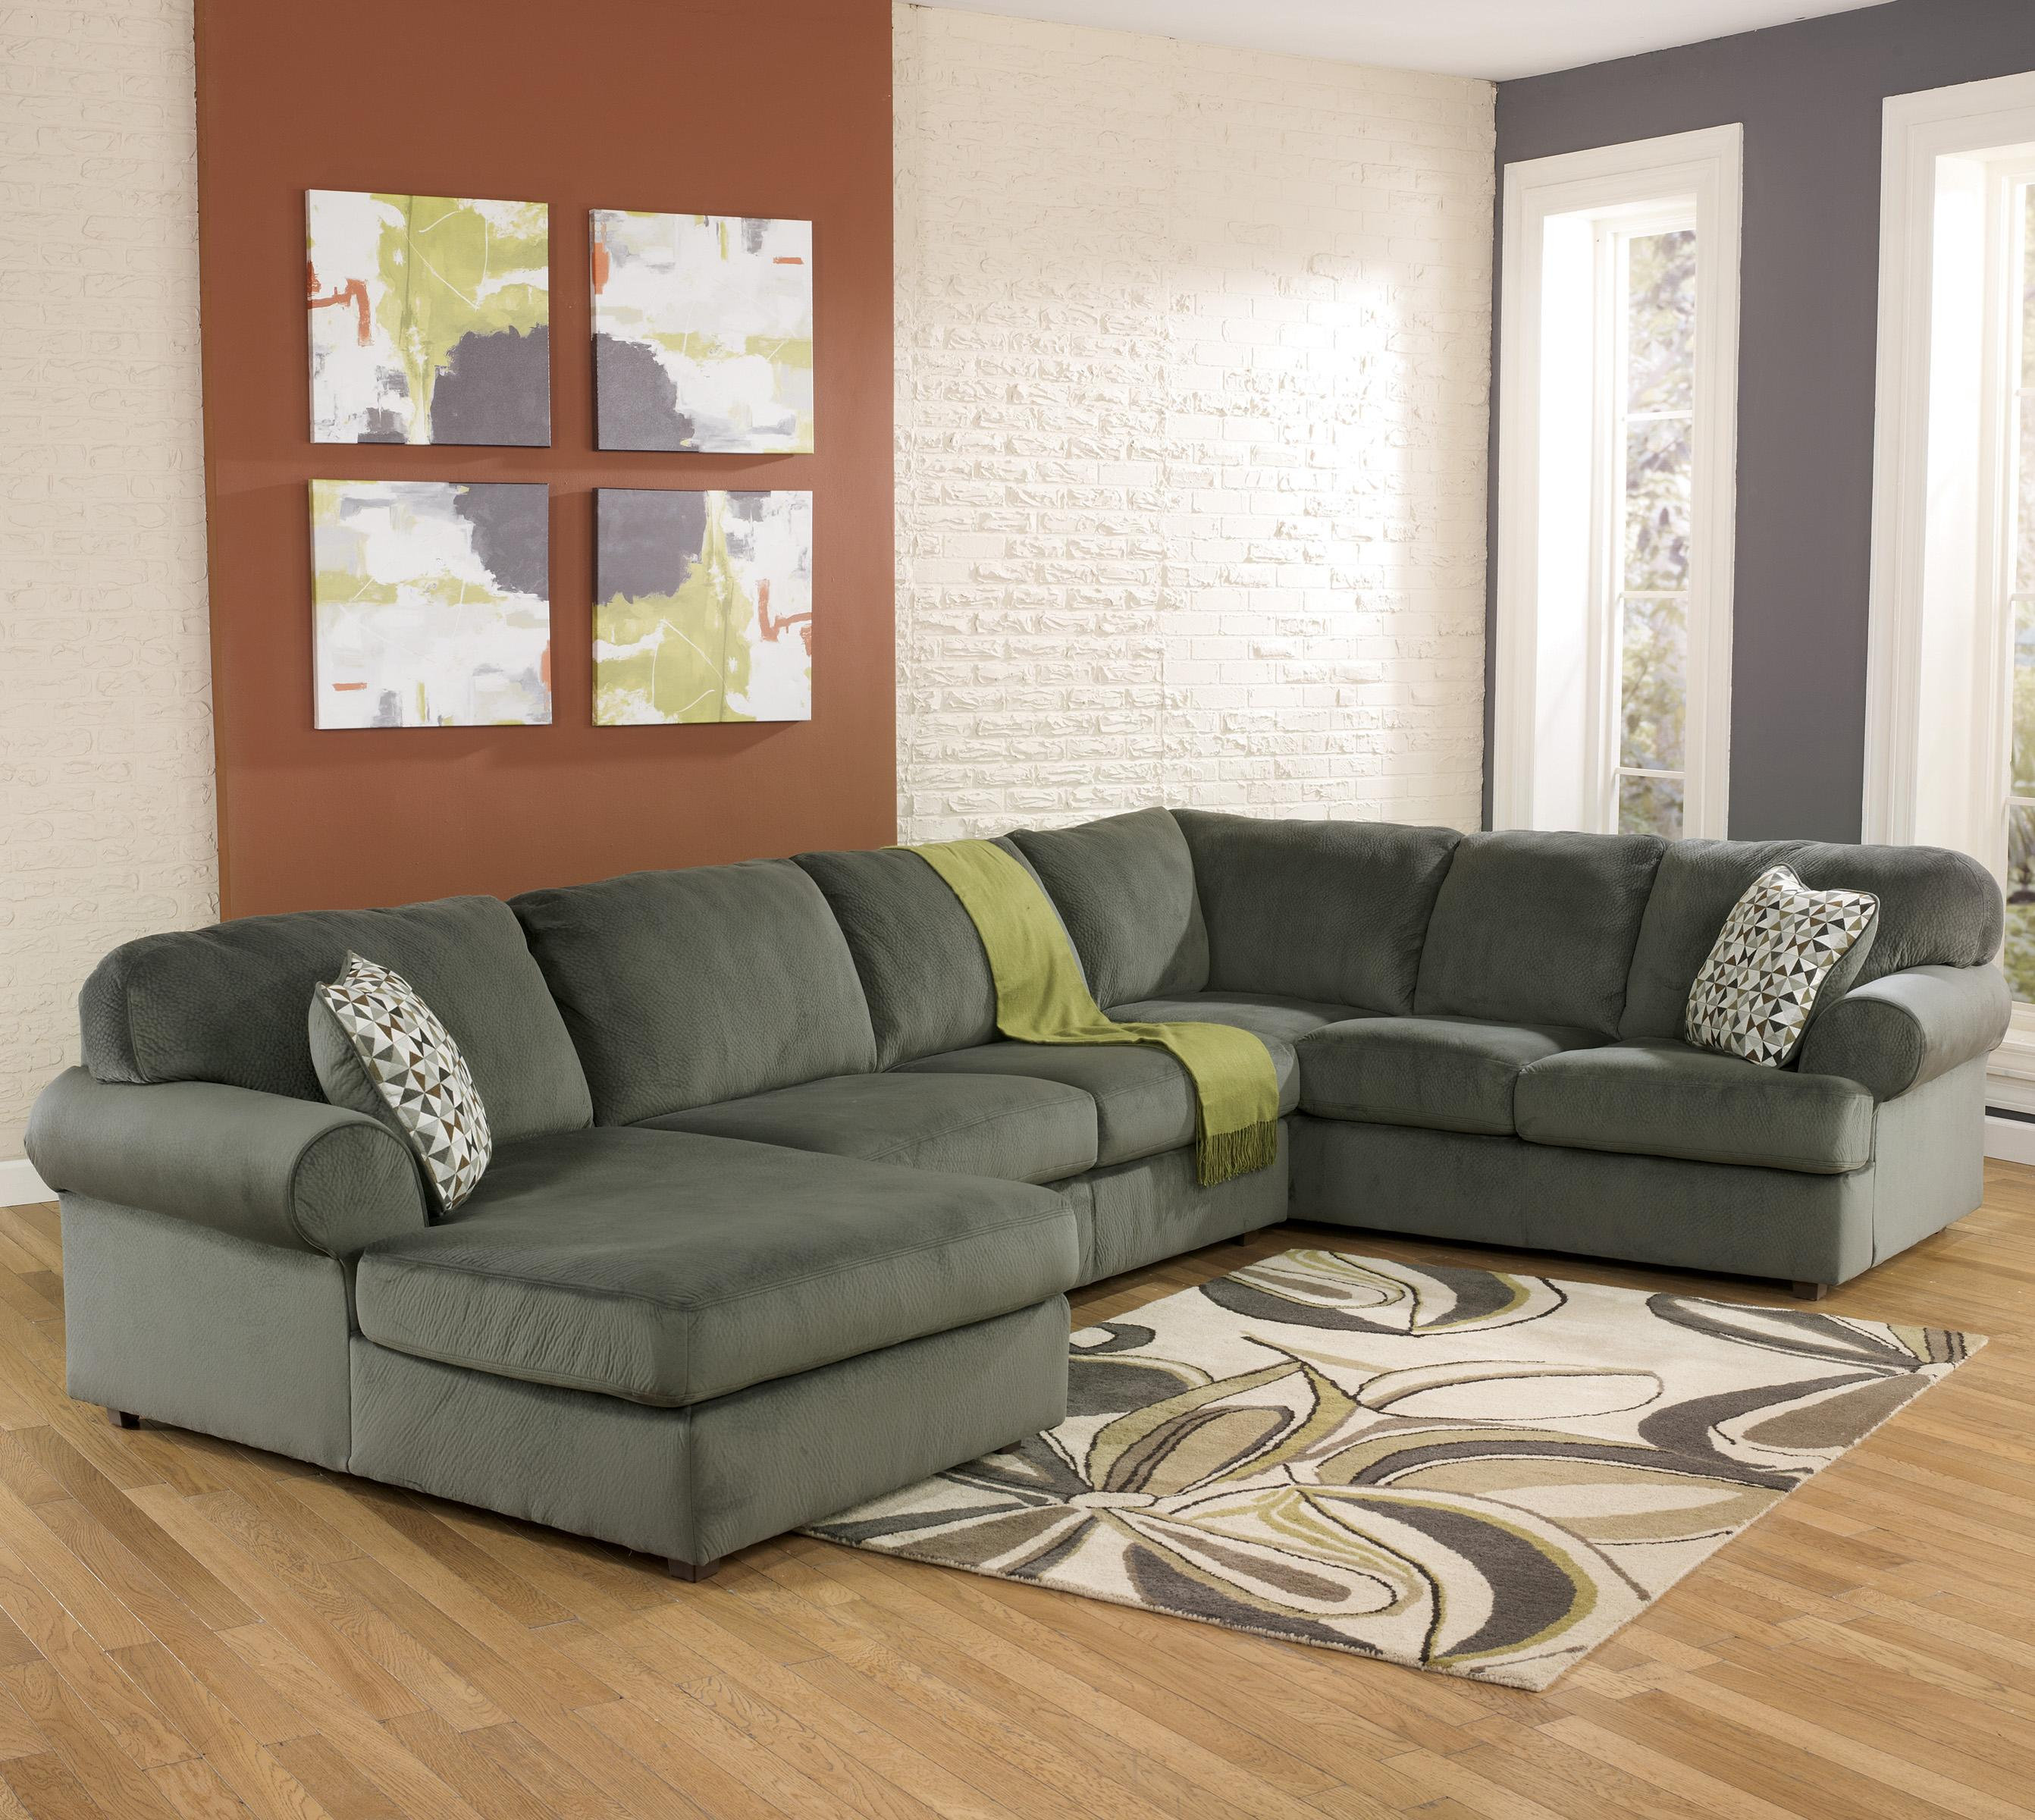 for lots living sofas farmers small fabric rooms room furniture sofa spaces chaise of big full sectional with functional recliners modern size leather